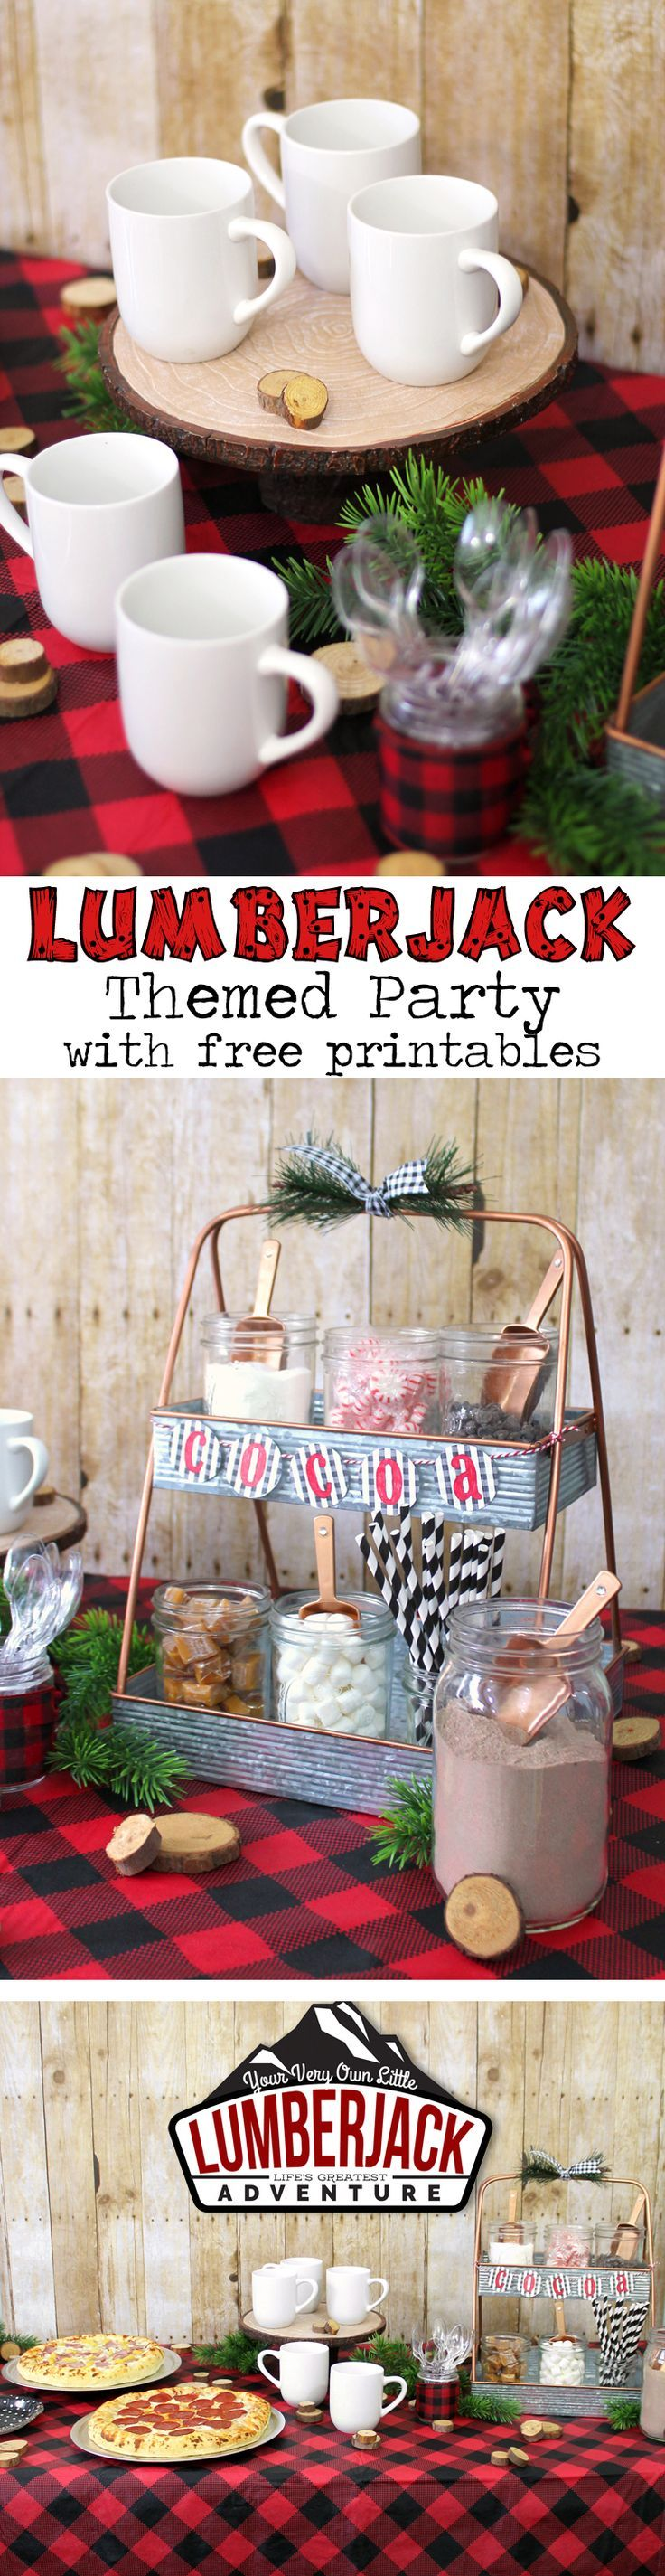 Lumber jack pizza and hot cocoa party table full of easy and cute ideas and free printables. A fun party theme for a baby shower, birthday party or girls night in.